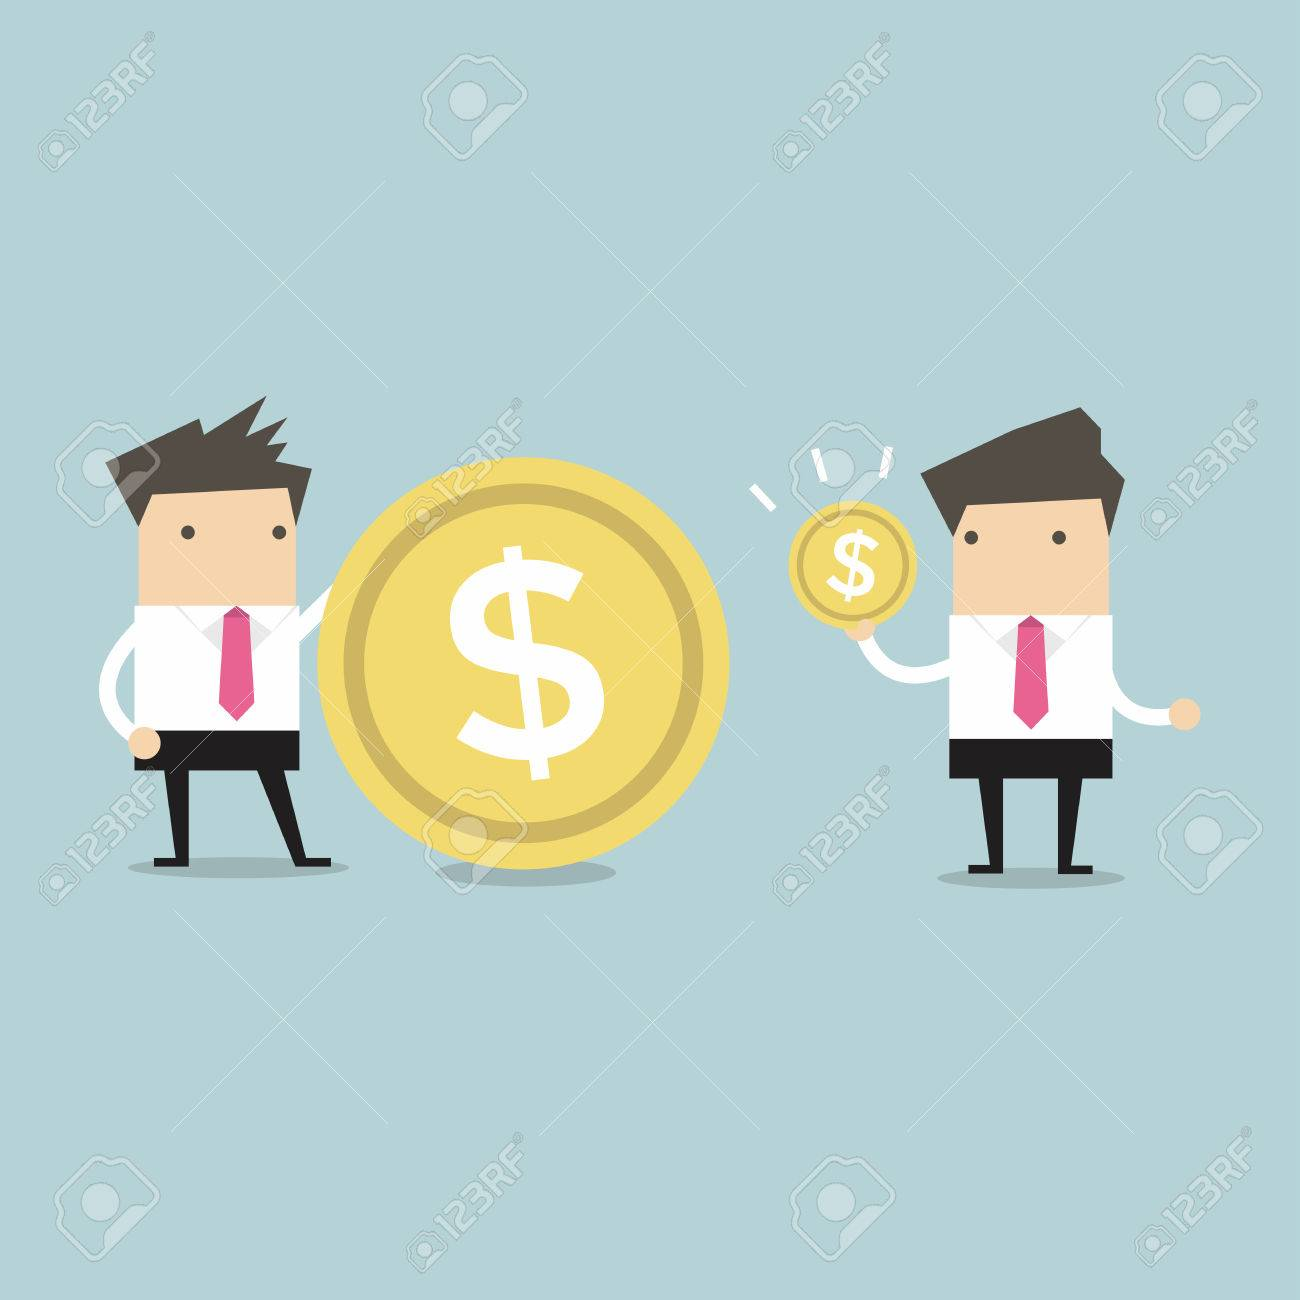 Businessmen comparing their income vector - 53893243